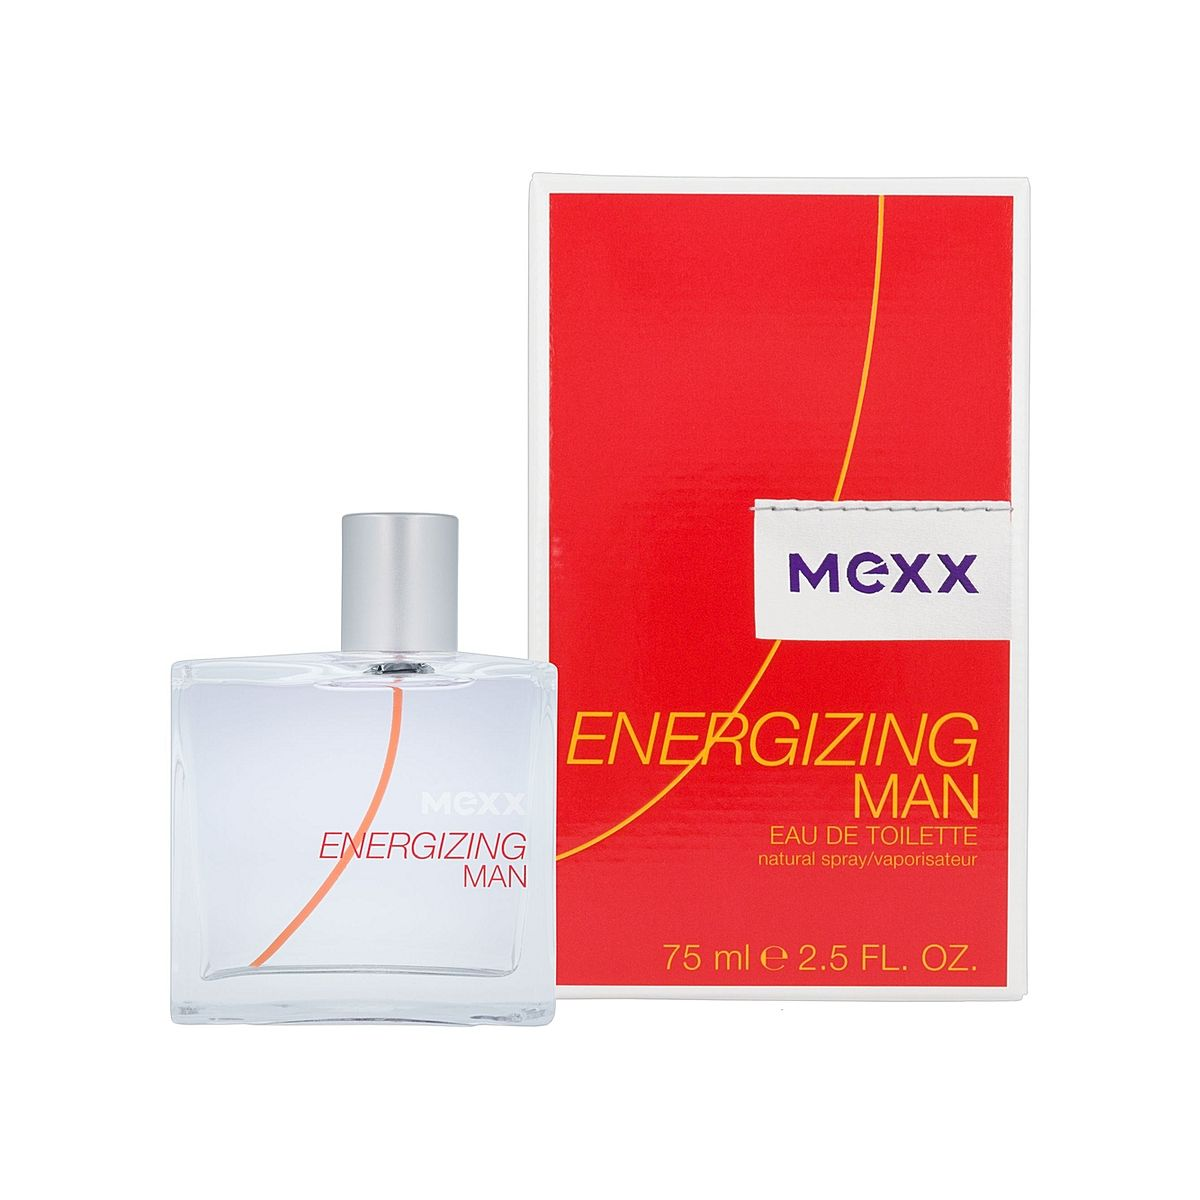 Mexx Energizing Man Eau de Toilette 75 ml Spray